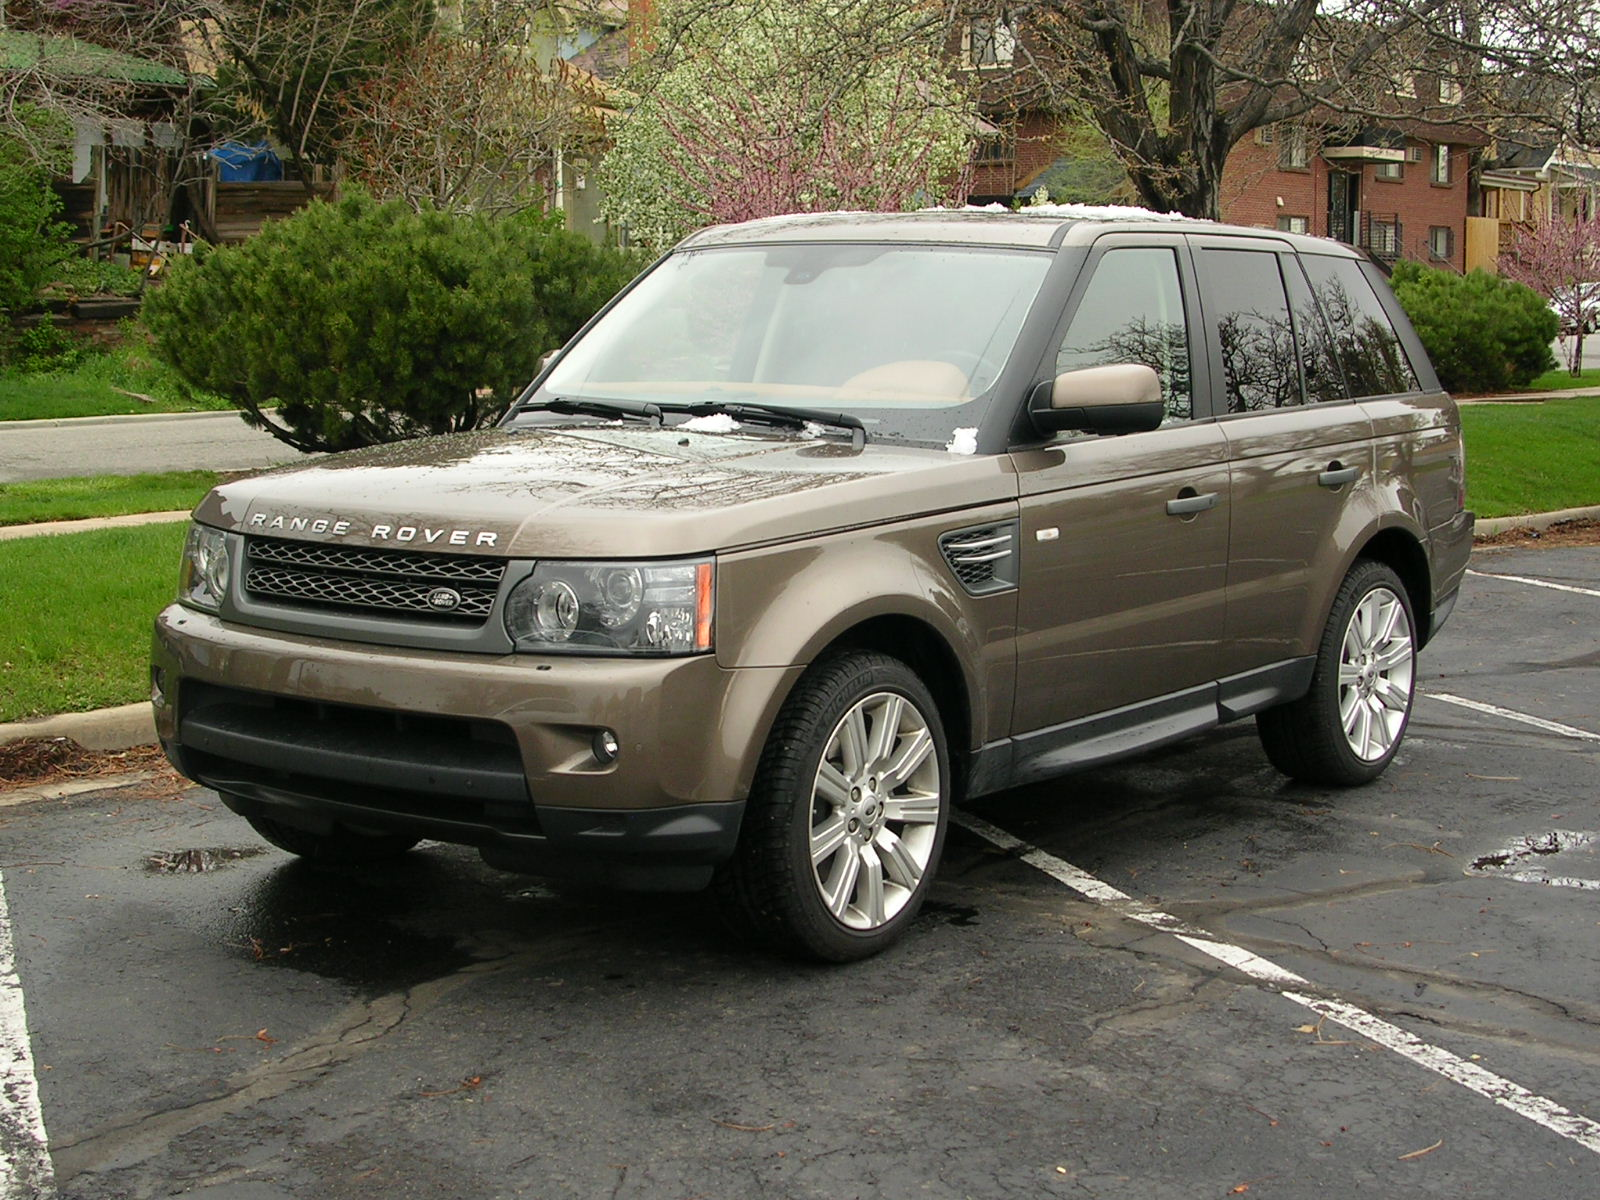 range rover denver wallpapers gallery. Black Bedroom Furniture Sets. Home Design Ideas